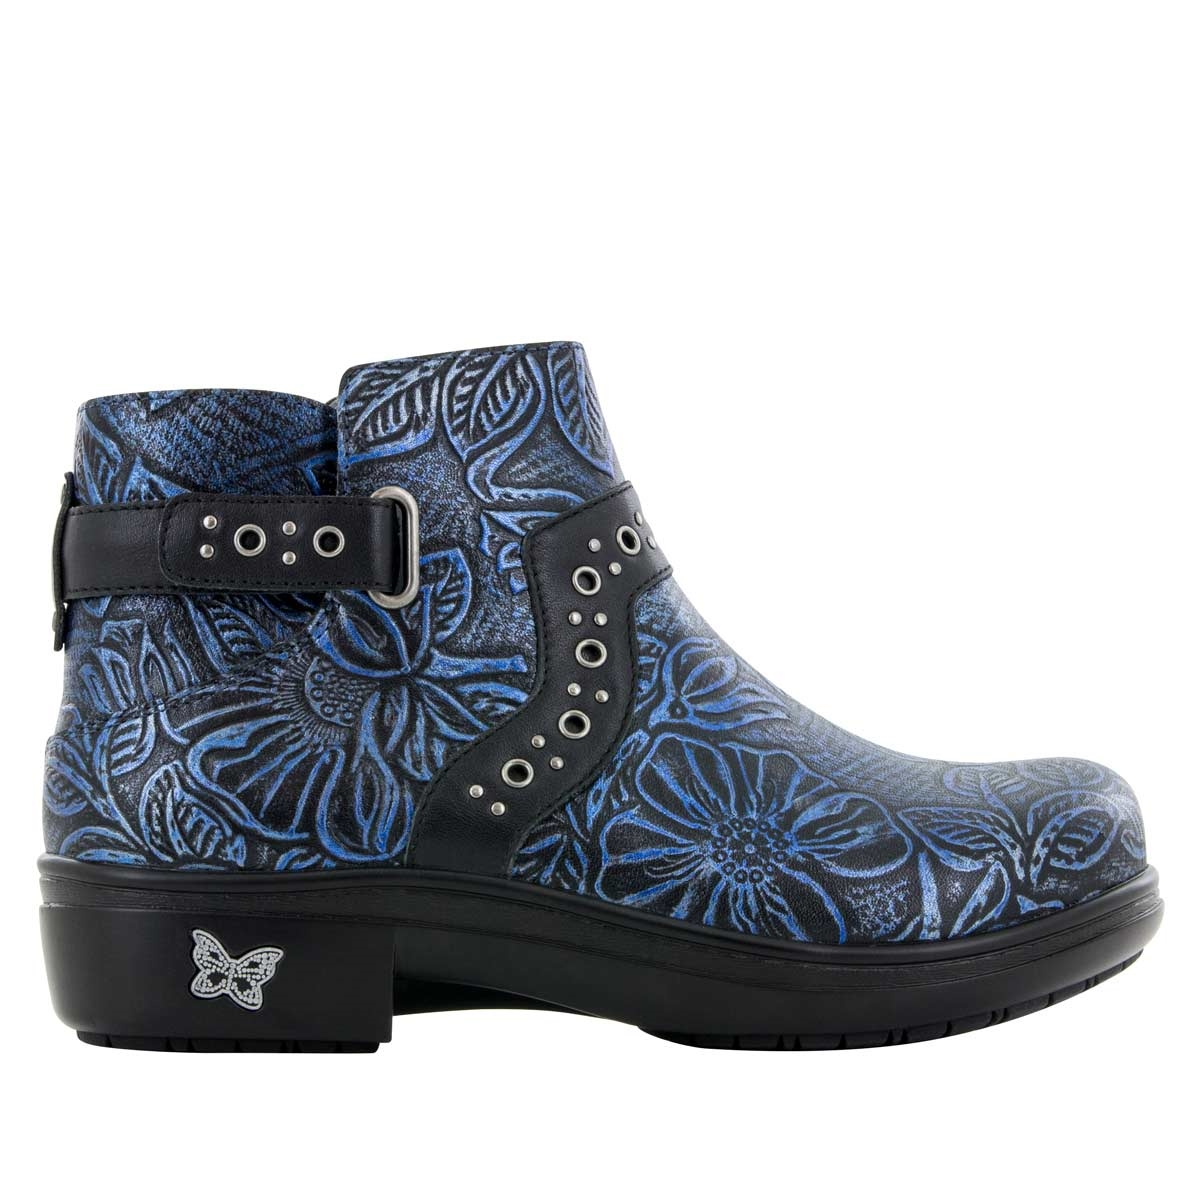 Water Alegria's Resistant In Fall Zoey Romance With Boot Love Blue wqXIn1ntS6